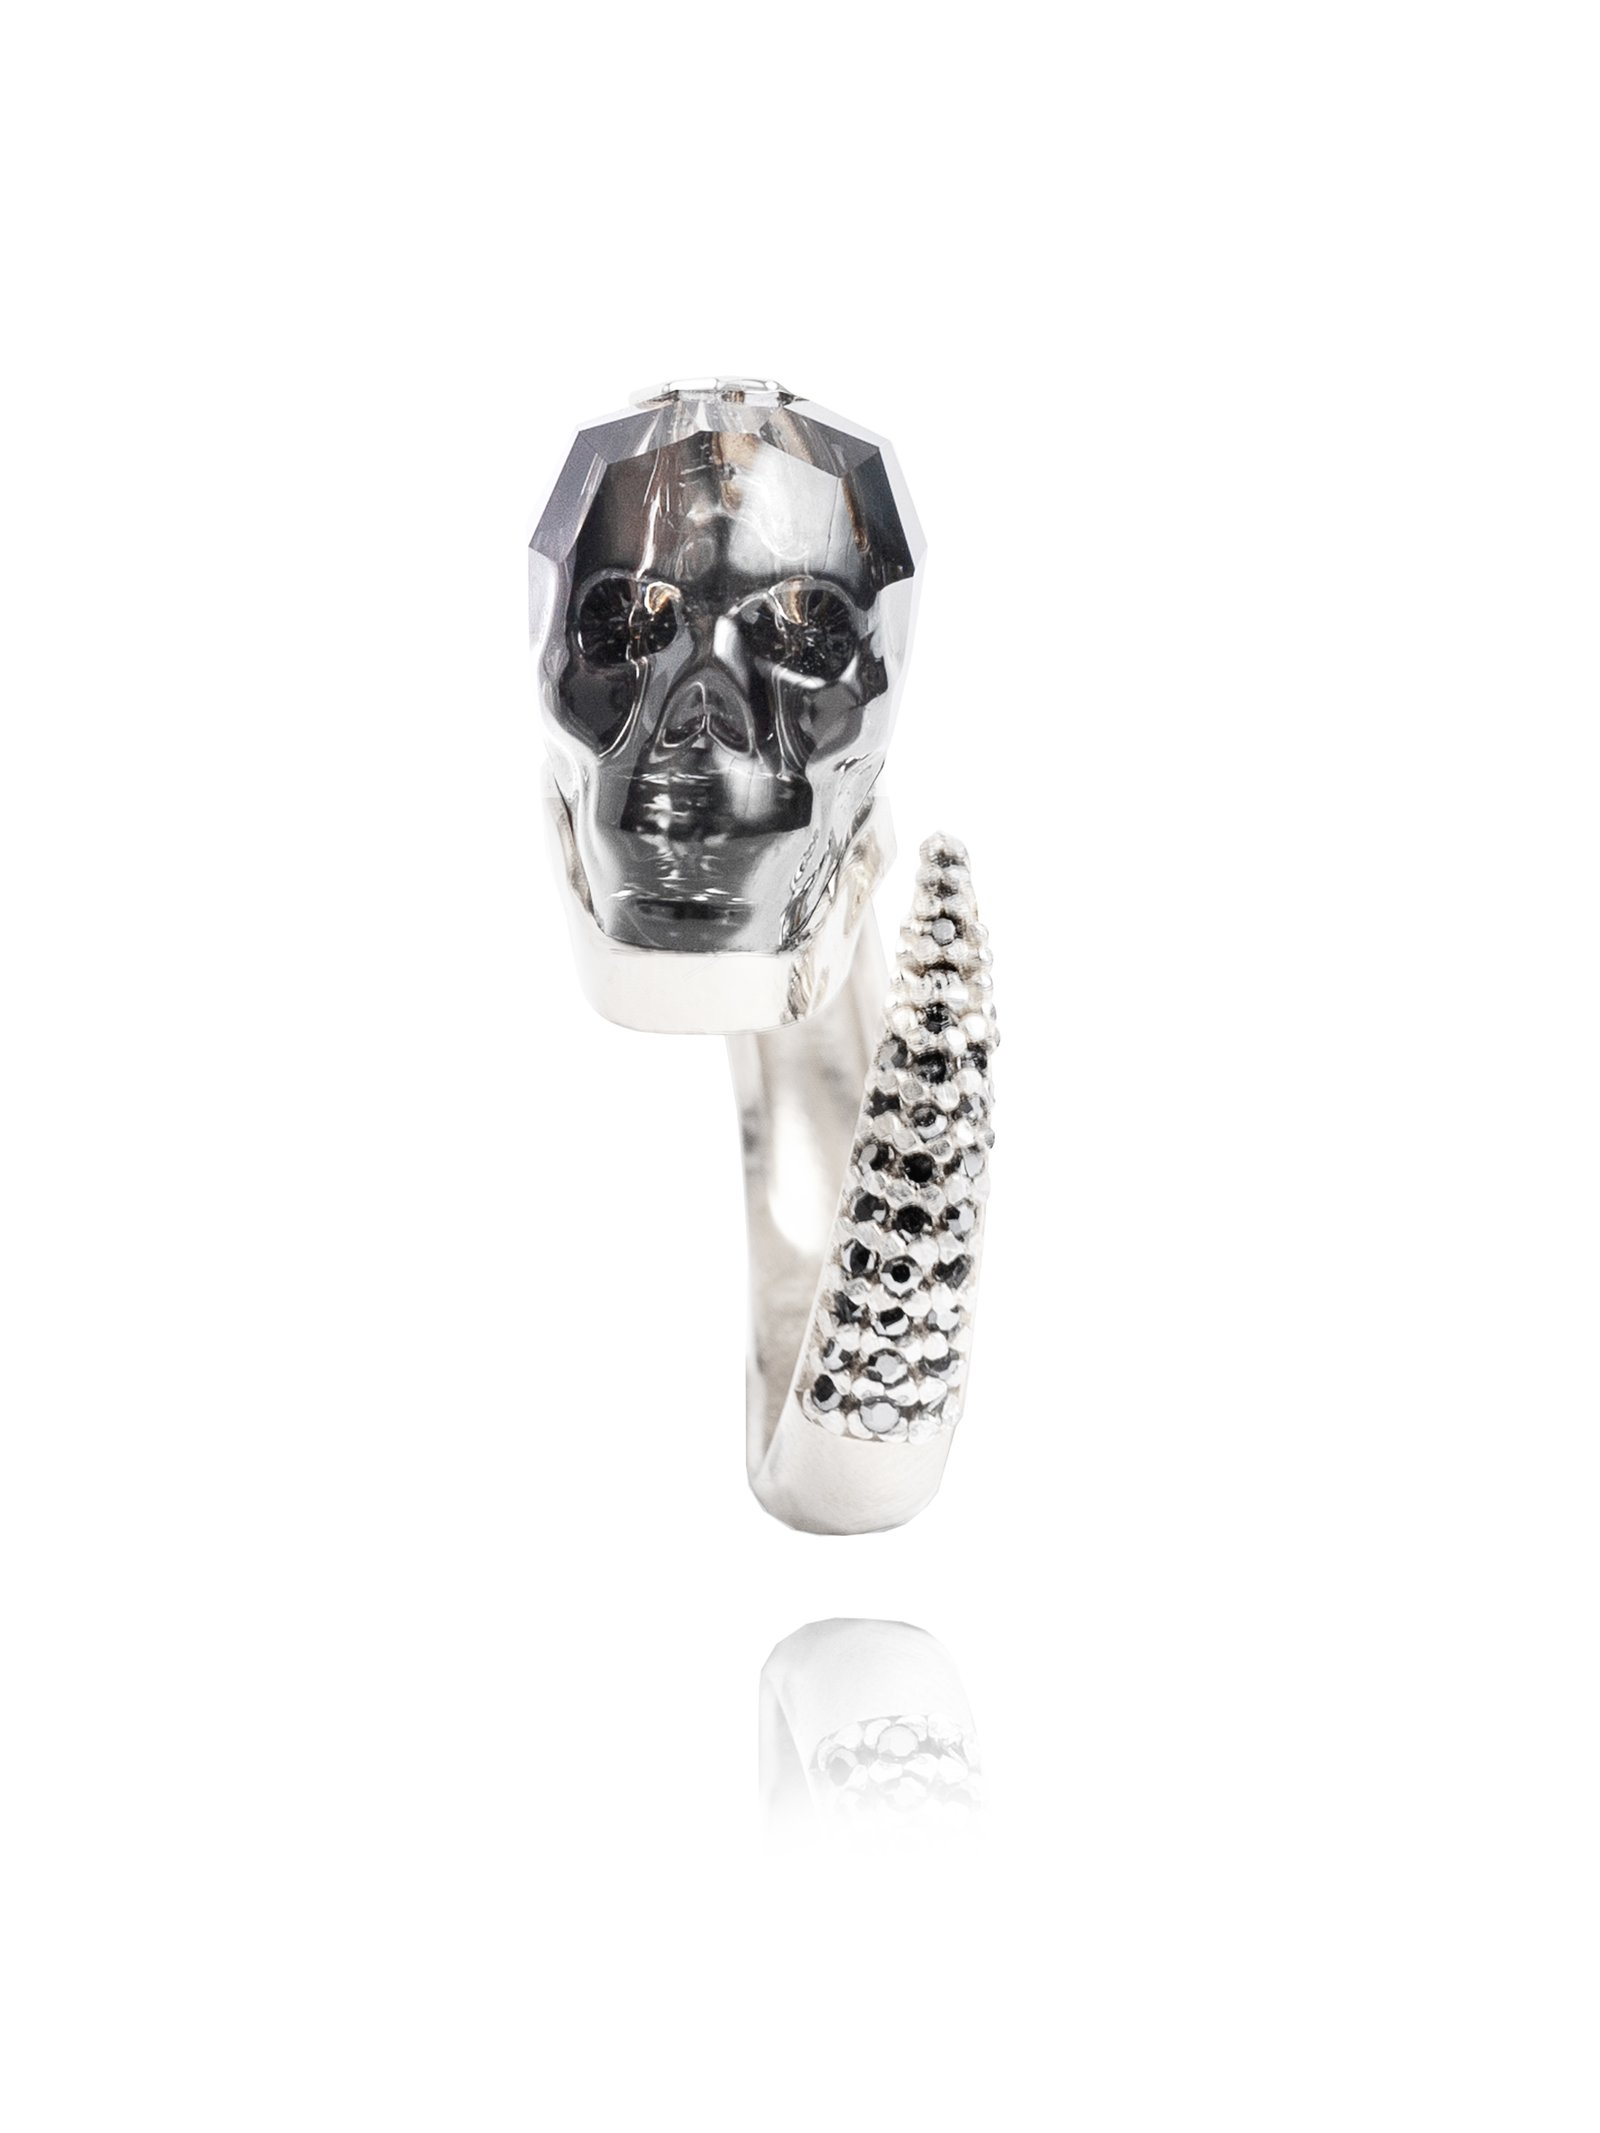 Ternary London DARK PARADISE SWAROVSKI SKULL & STERLING SILVER RING